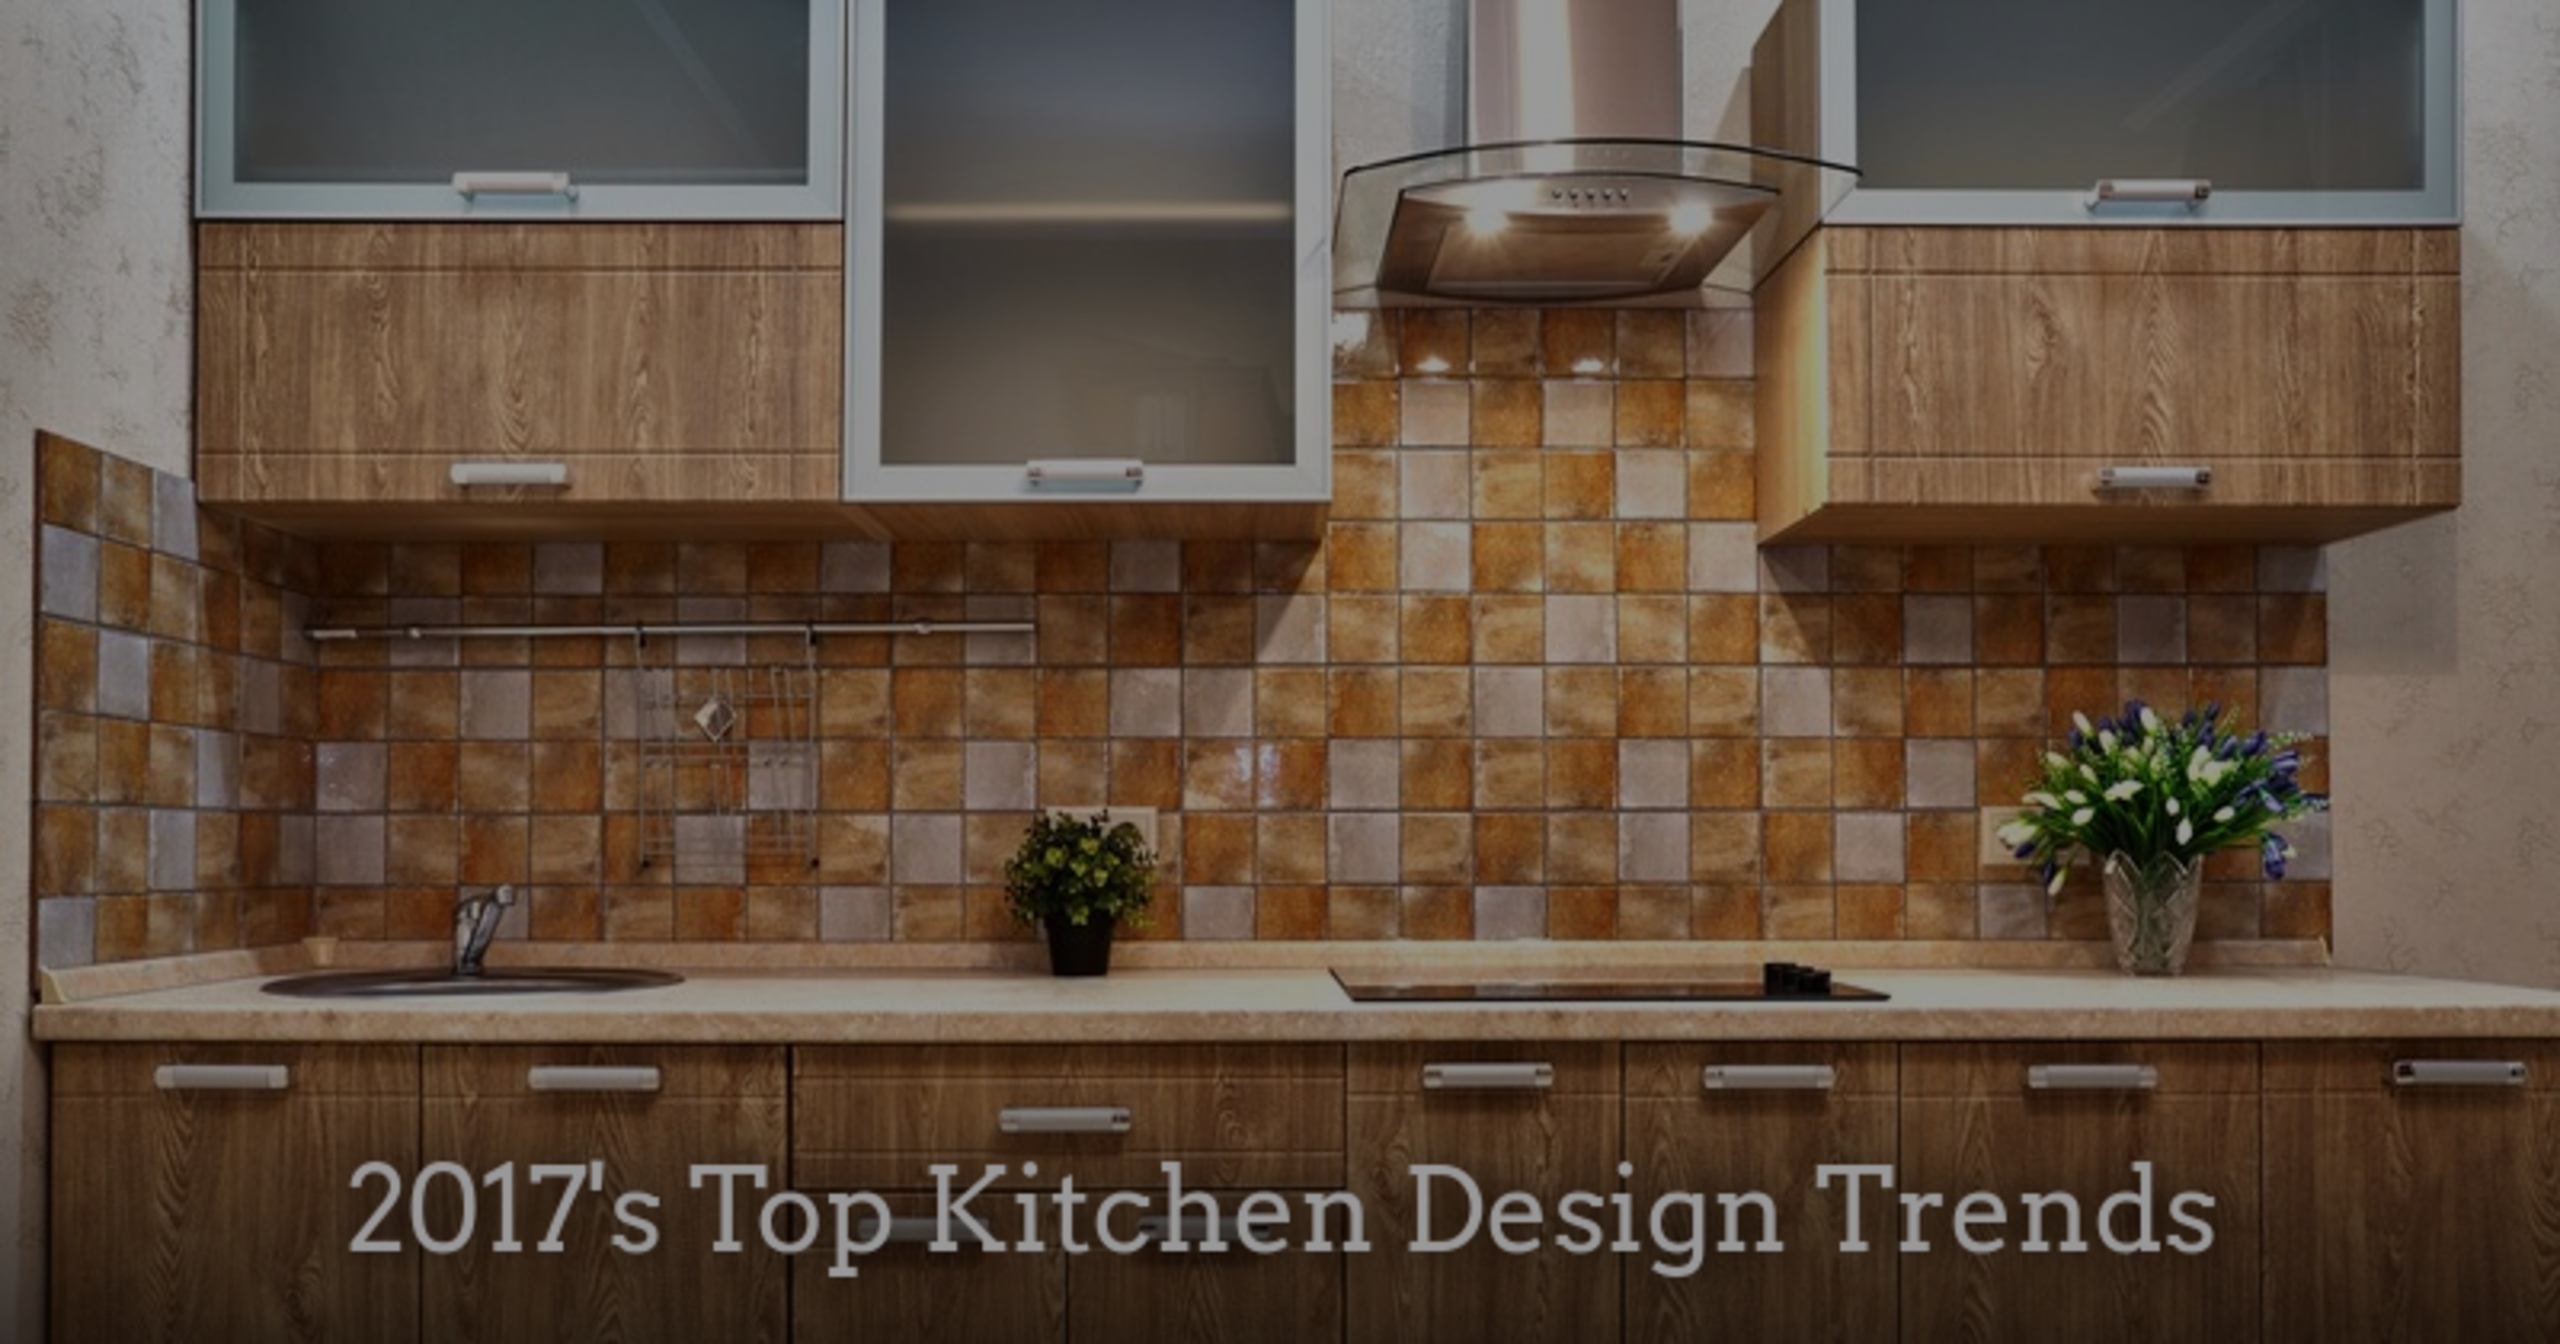 2017's Top Kitchen Design Trends